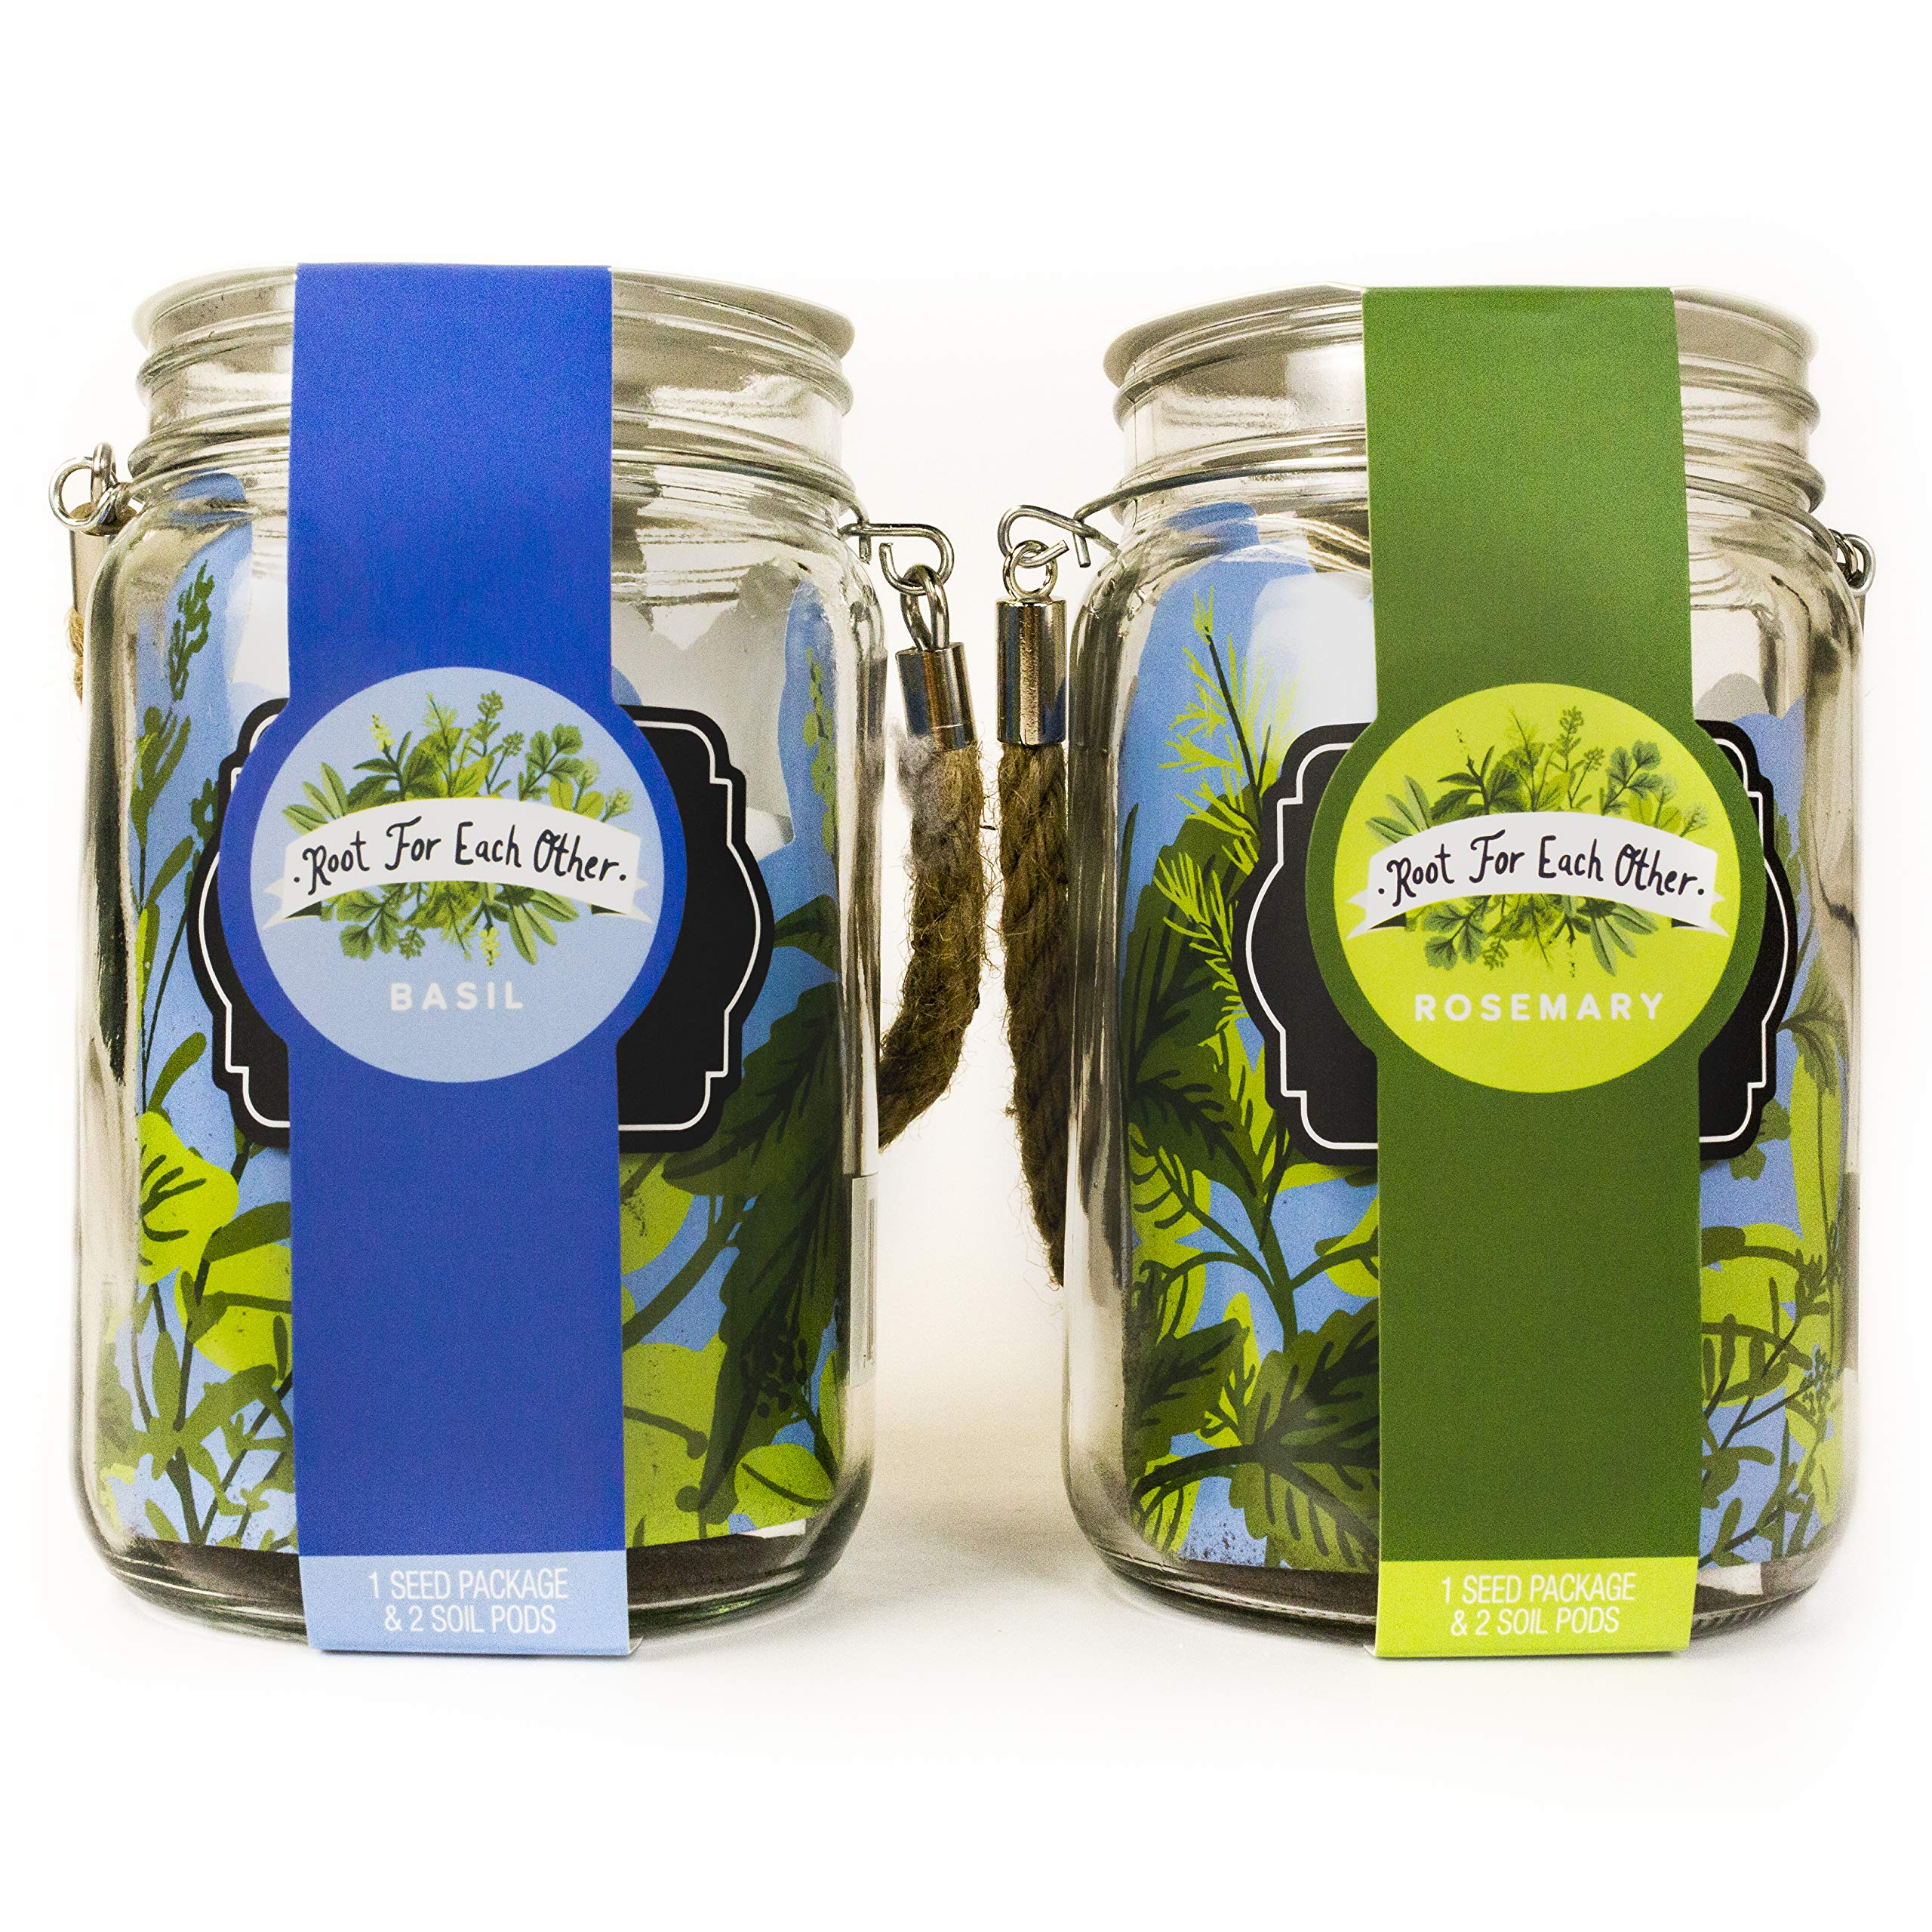 Thoughtfully Gifts, Lantern Herb Jars with Hanging Rope 2 Pack, Grow Your Own Herb Gift Set, Includes Two Stylish 24 Ounce Lantern Jar Planters, Rosemary and Basil Seeds, and 4 Soil Pods by Thoughtfully